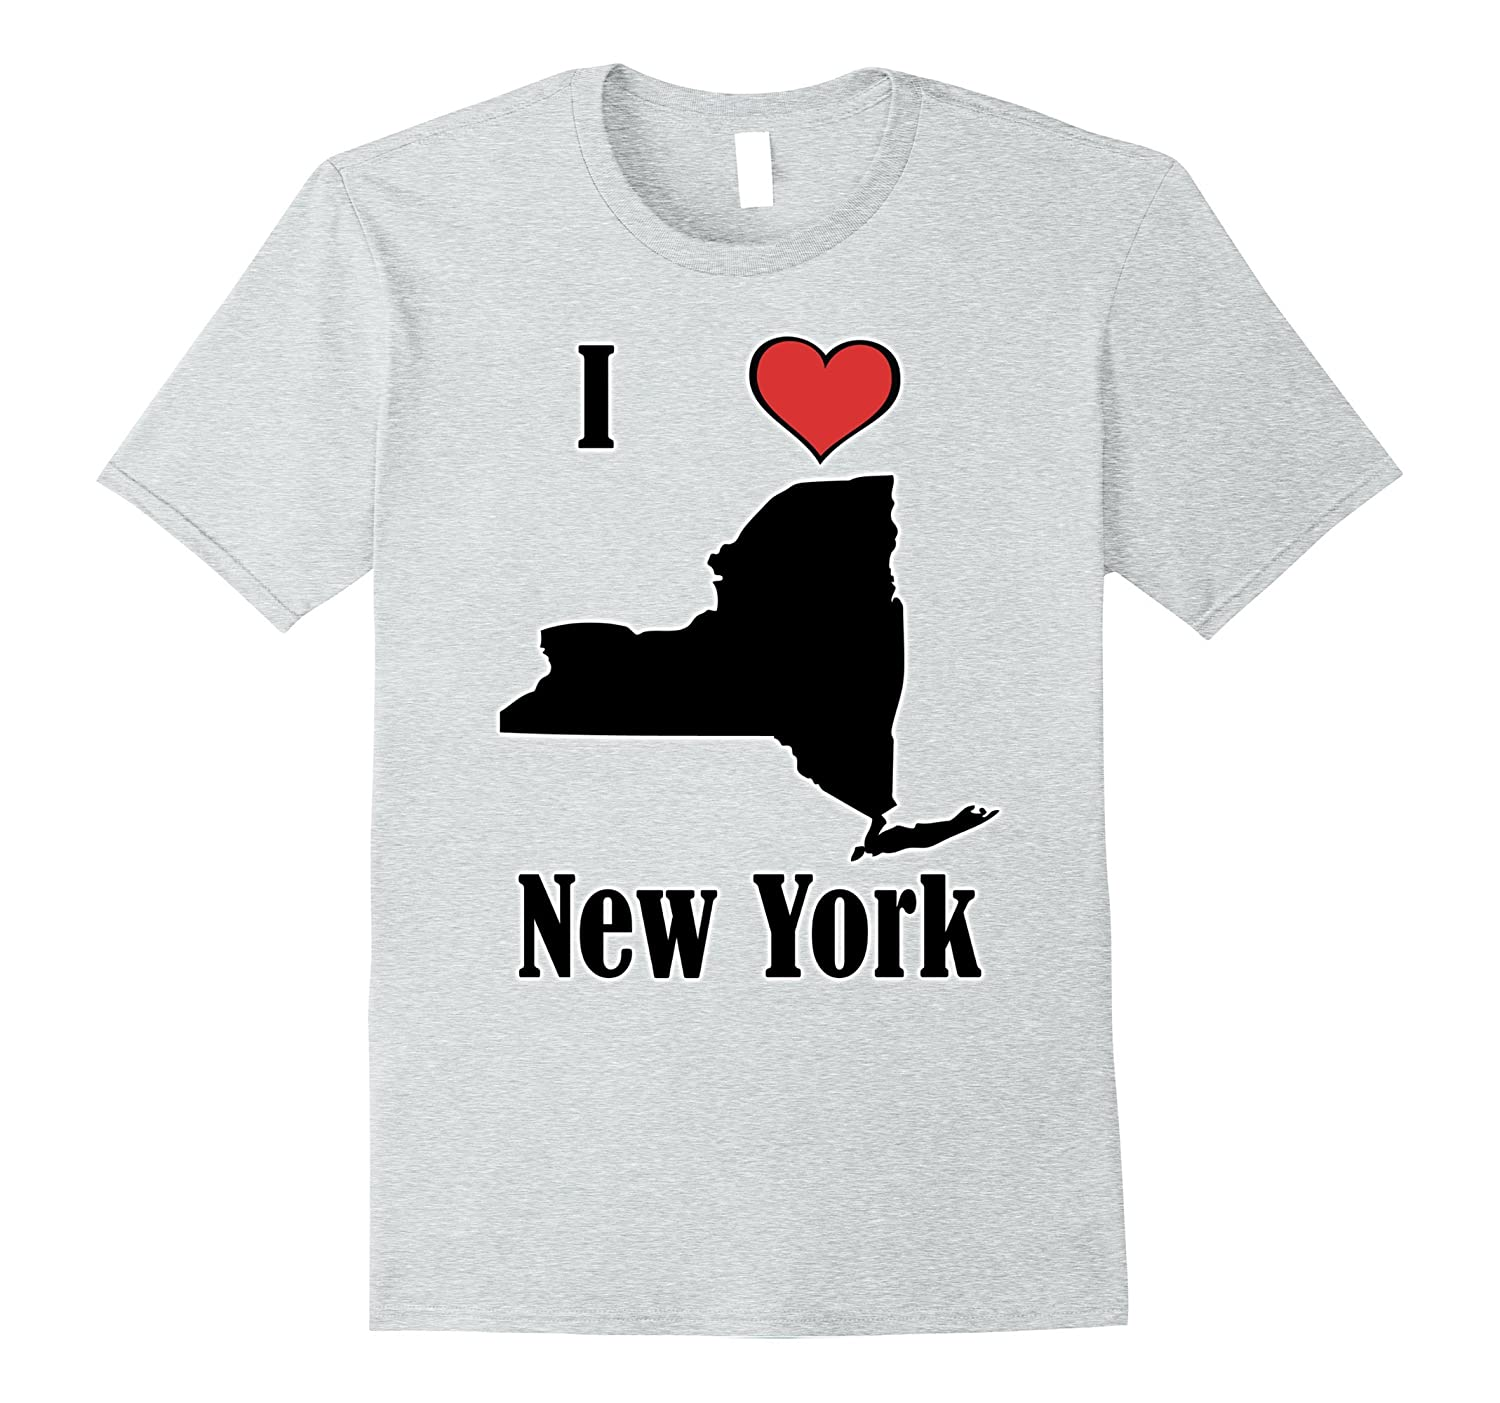 I love New York Souvenir T-shirt State of New York-PL